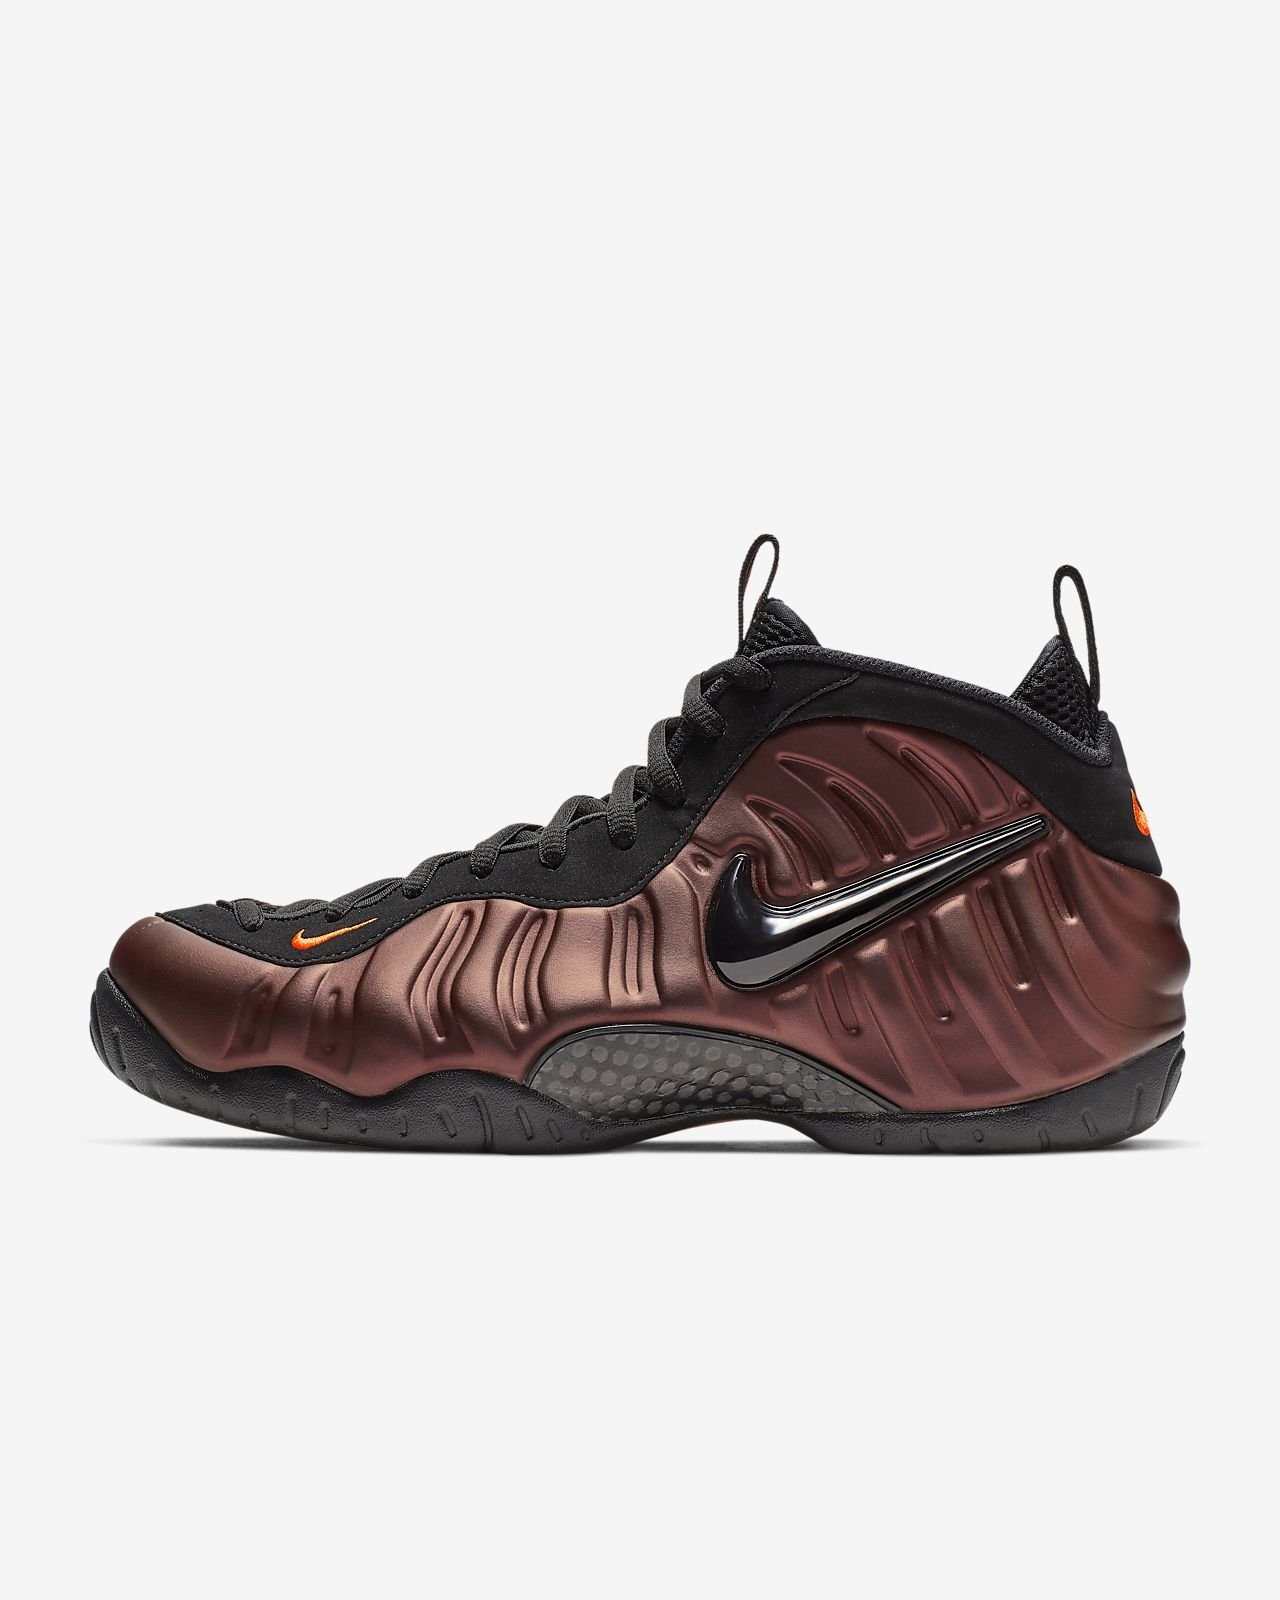 ecac58ffce3f9 Nike Air Foamposite Pro Men s Shoe. Nike.com SG